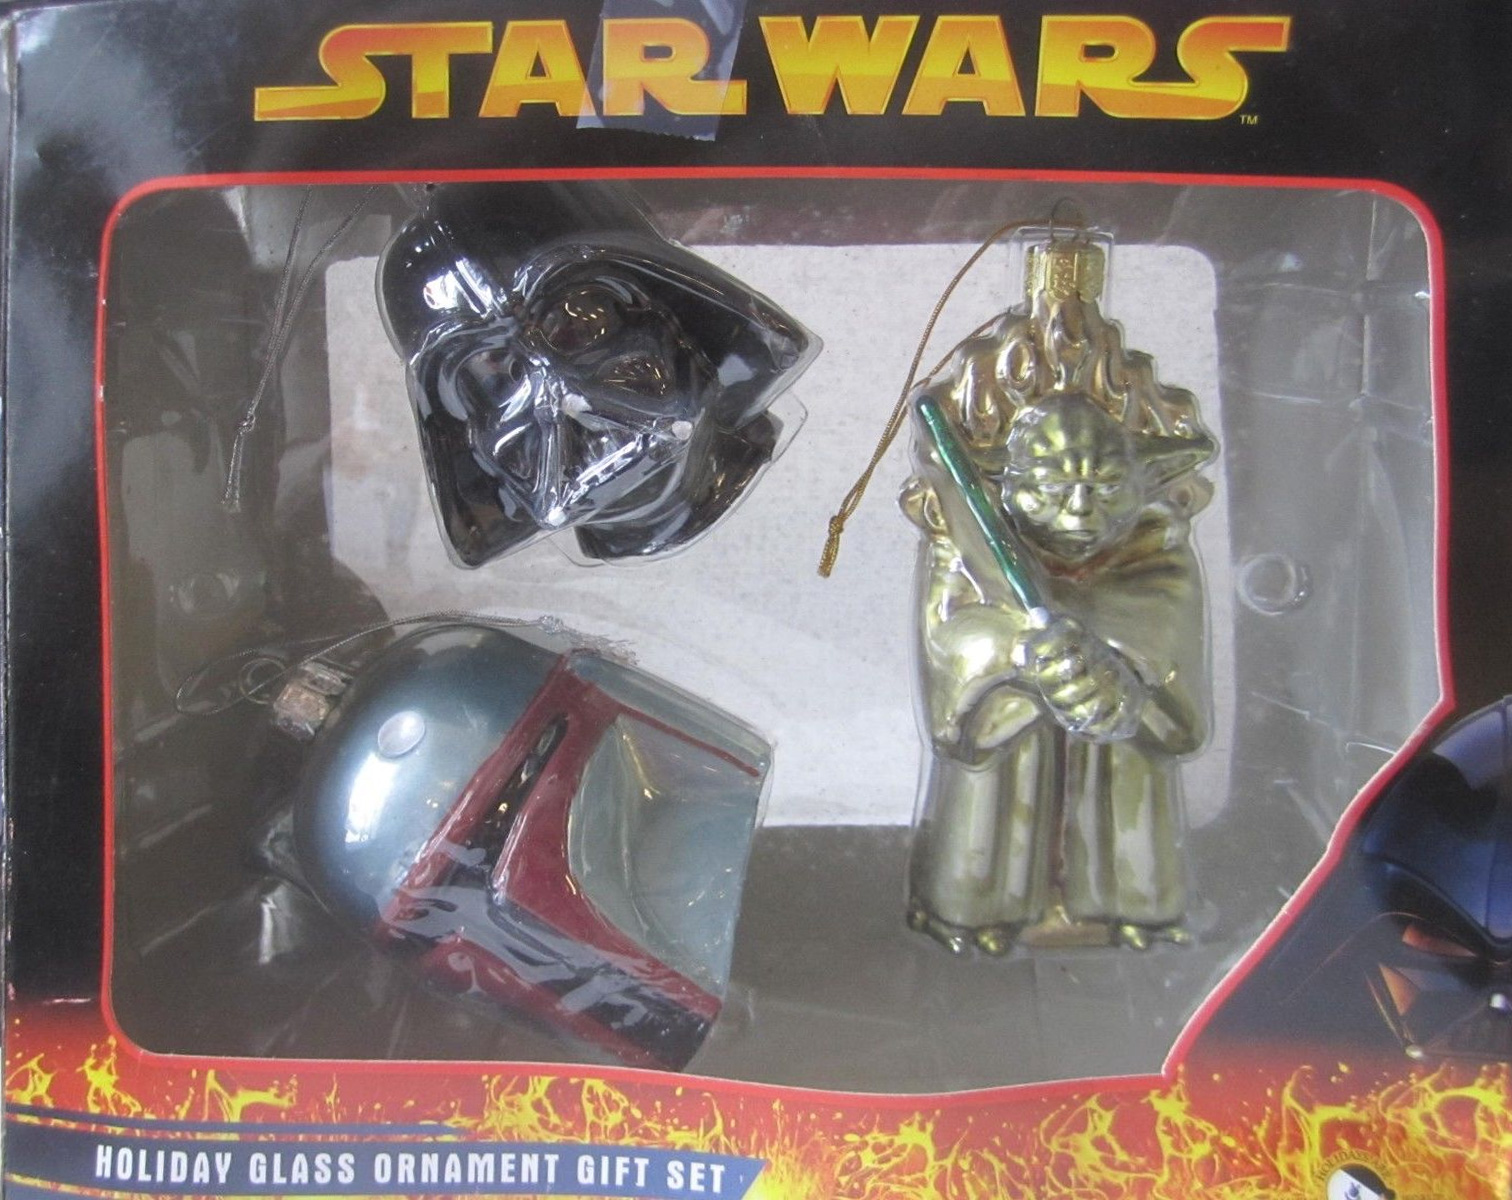 Star Wars Holiday Glass Ornament Gift Set (2005)